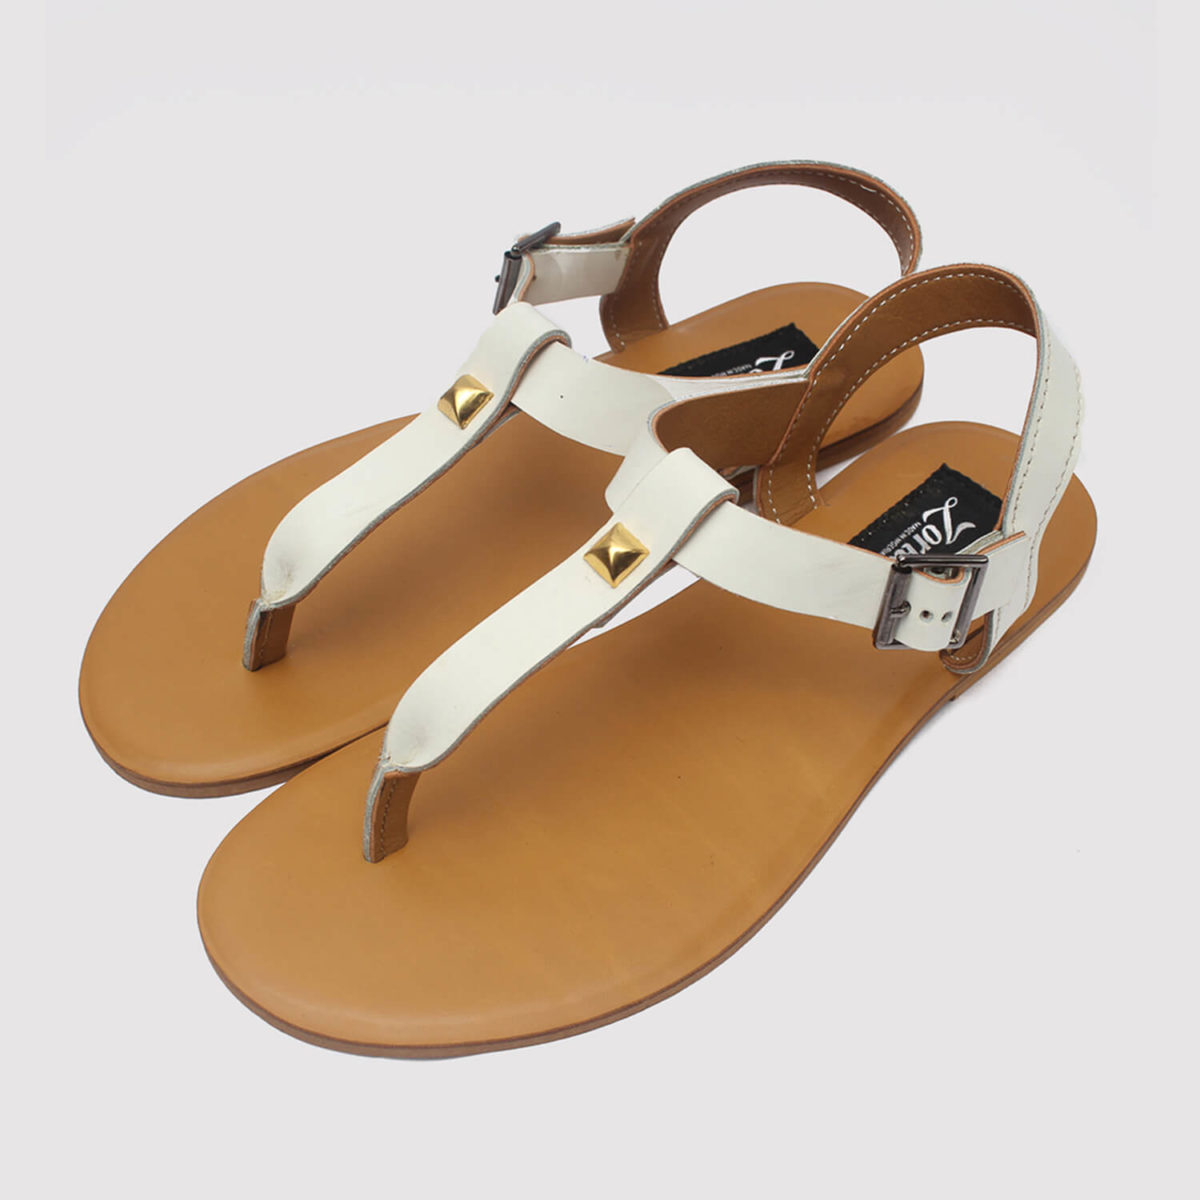 toke sandals white zorkle shoes in lagos nigeria